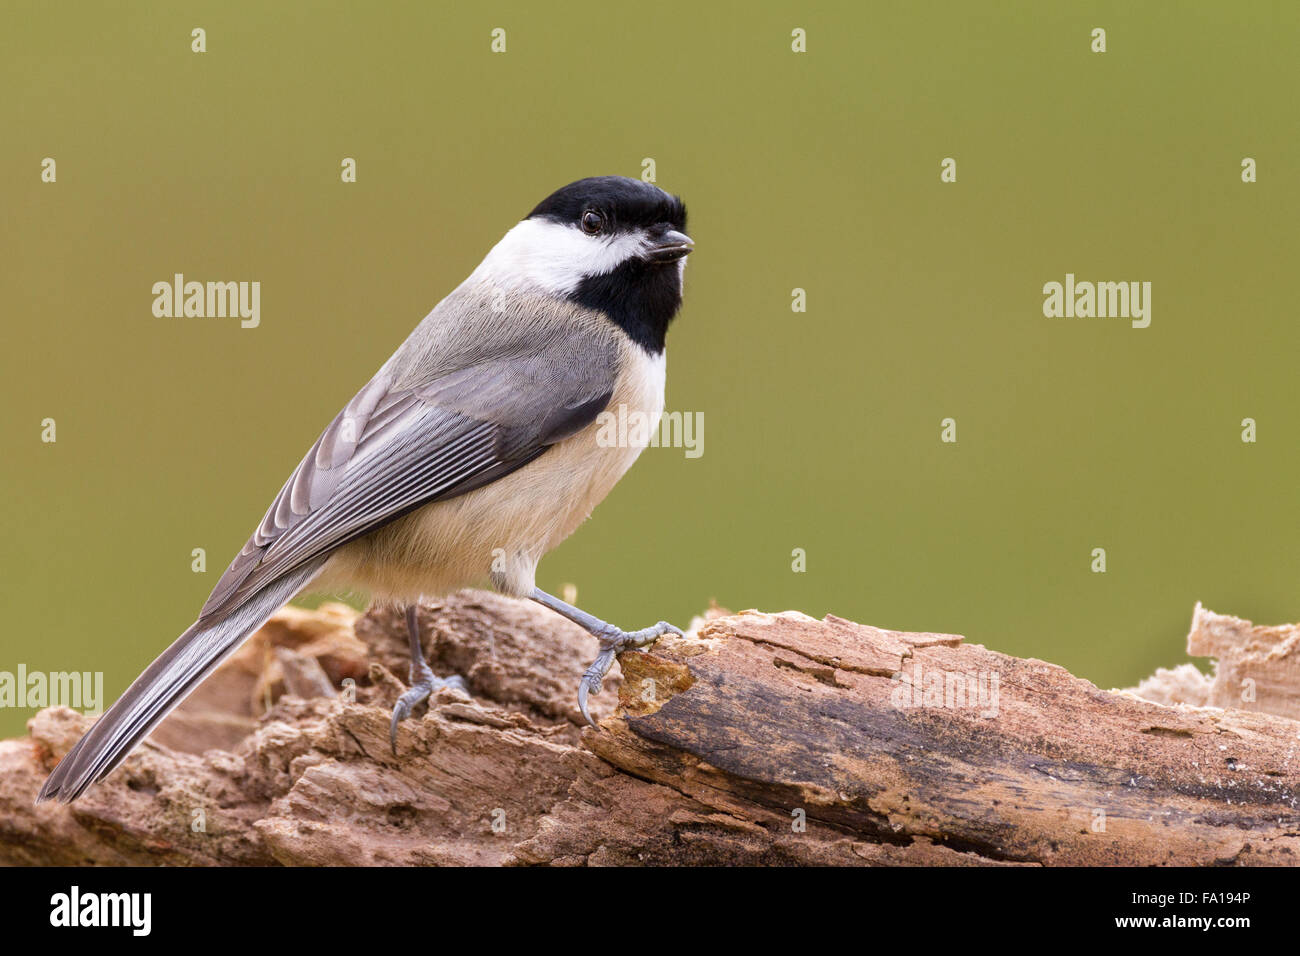 A Carolina chickadee perched on a fallen log. - Stock Image